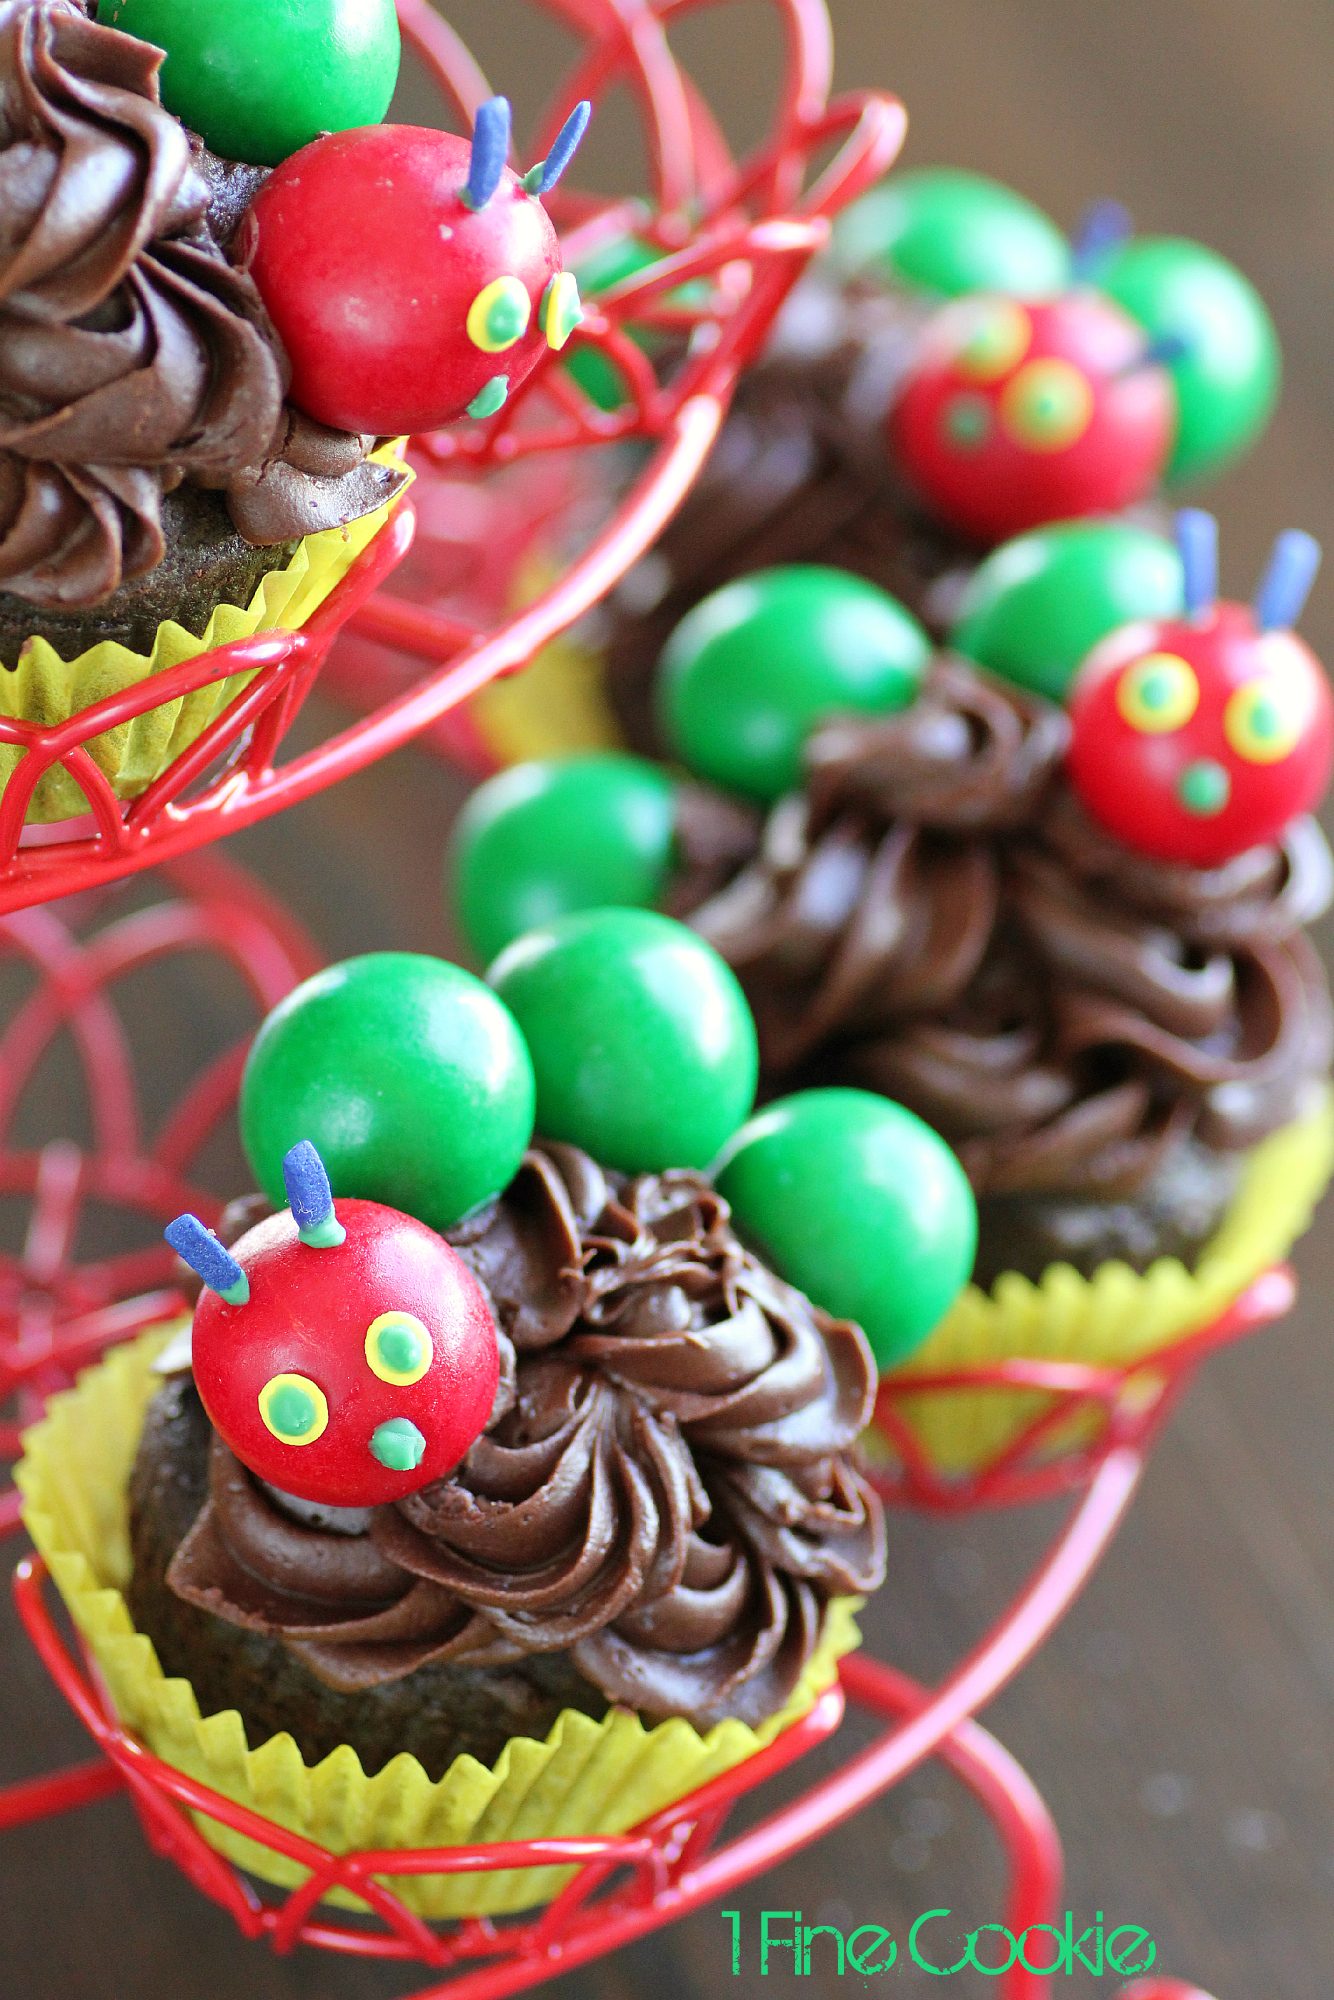 The Very Hungry Caterpillar Cake And Cupcakes 1 Fine Cookie